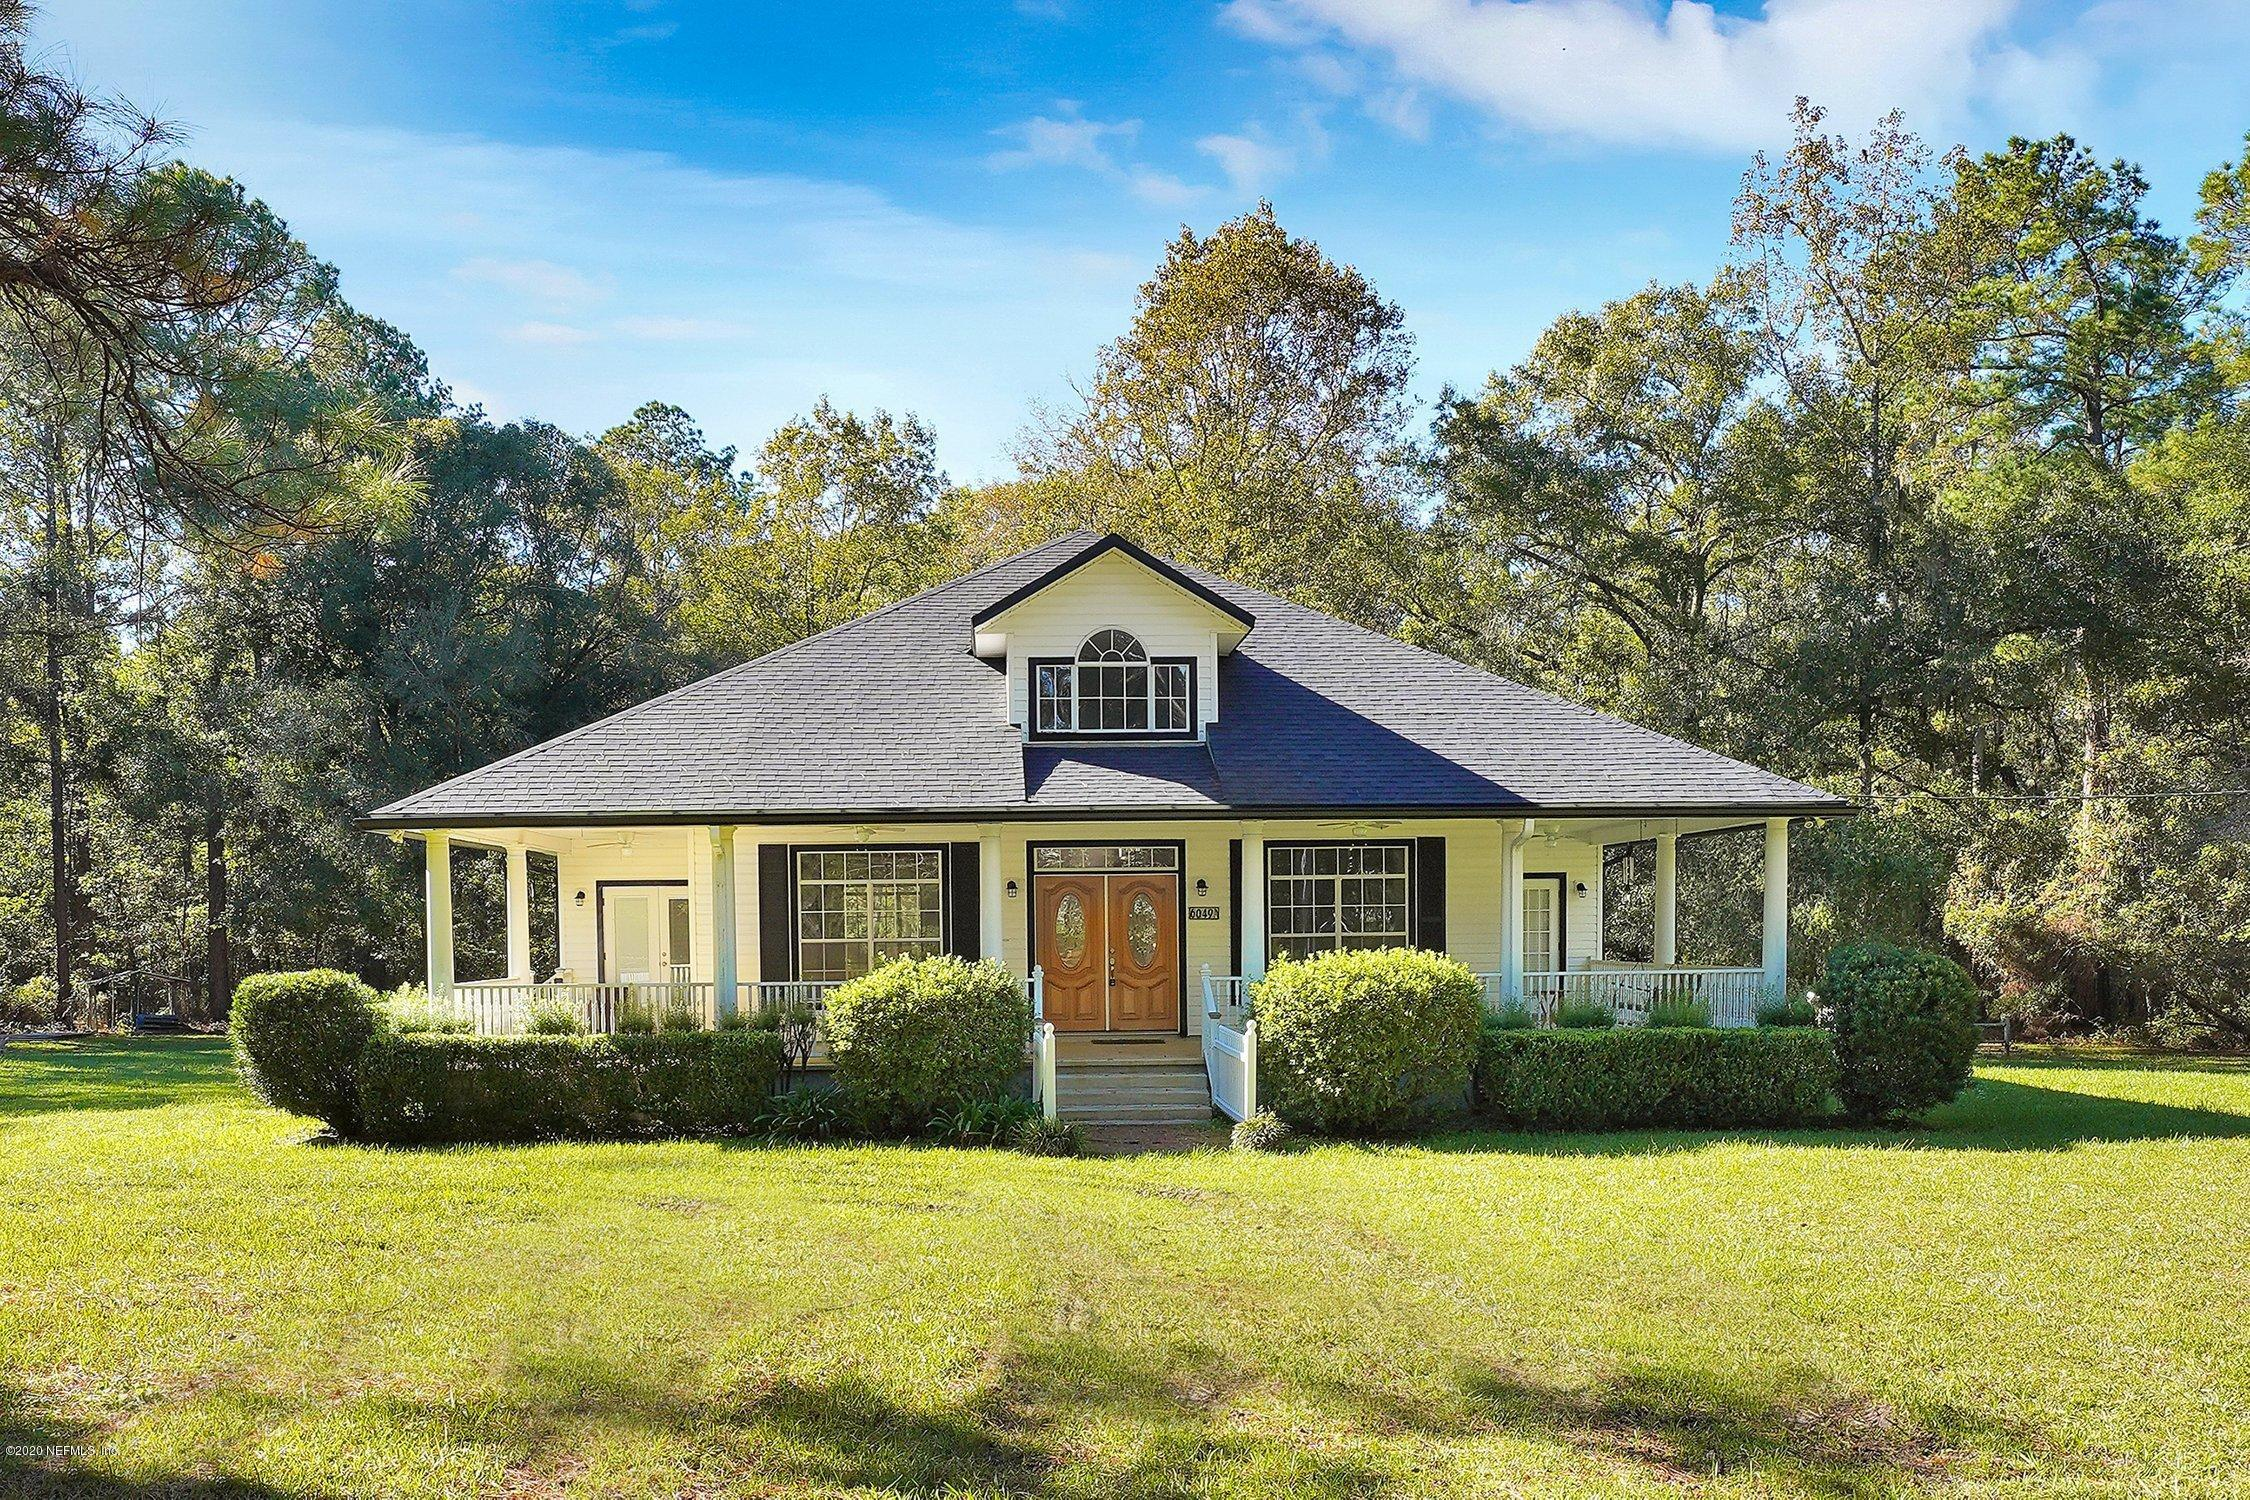 Details for 6049 Twin Pines Rd, JACKSONVILLE, FL 32234